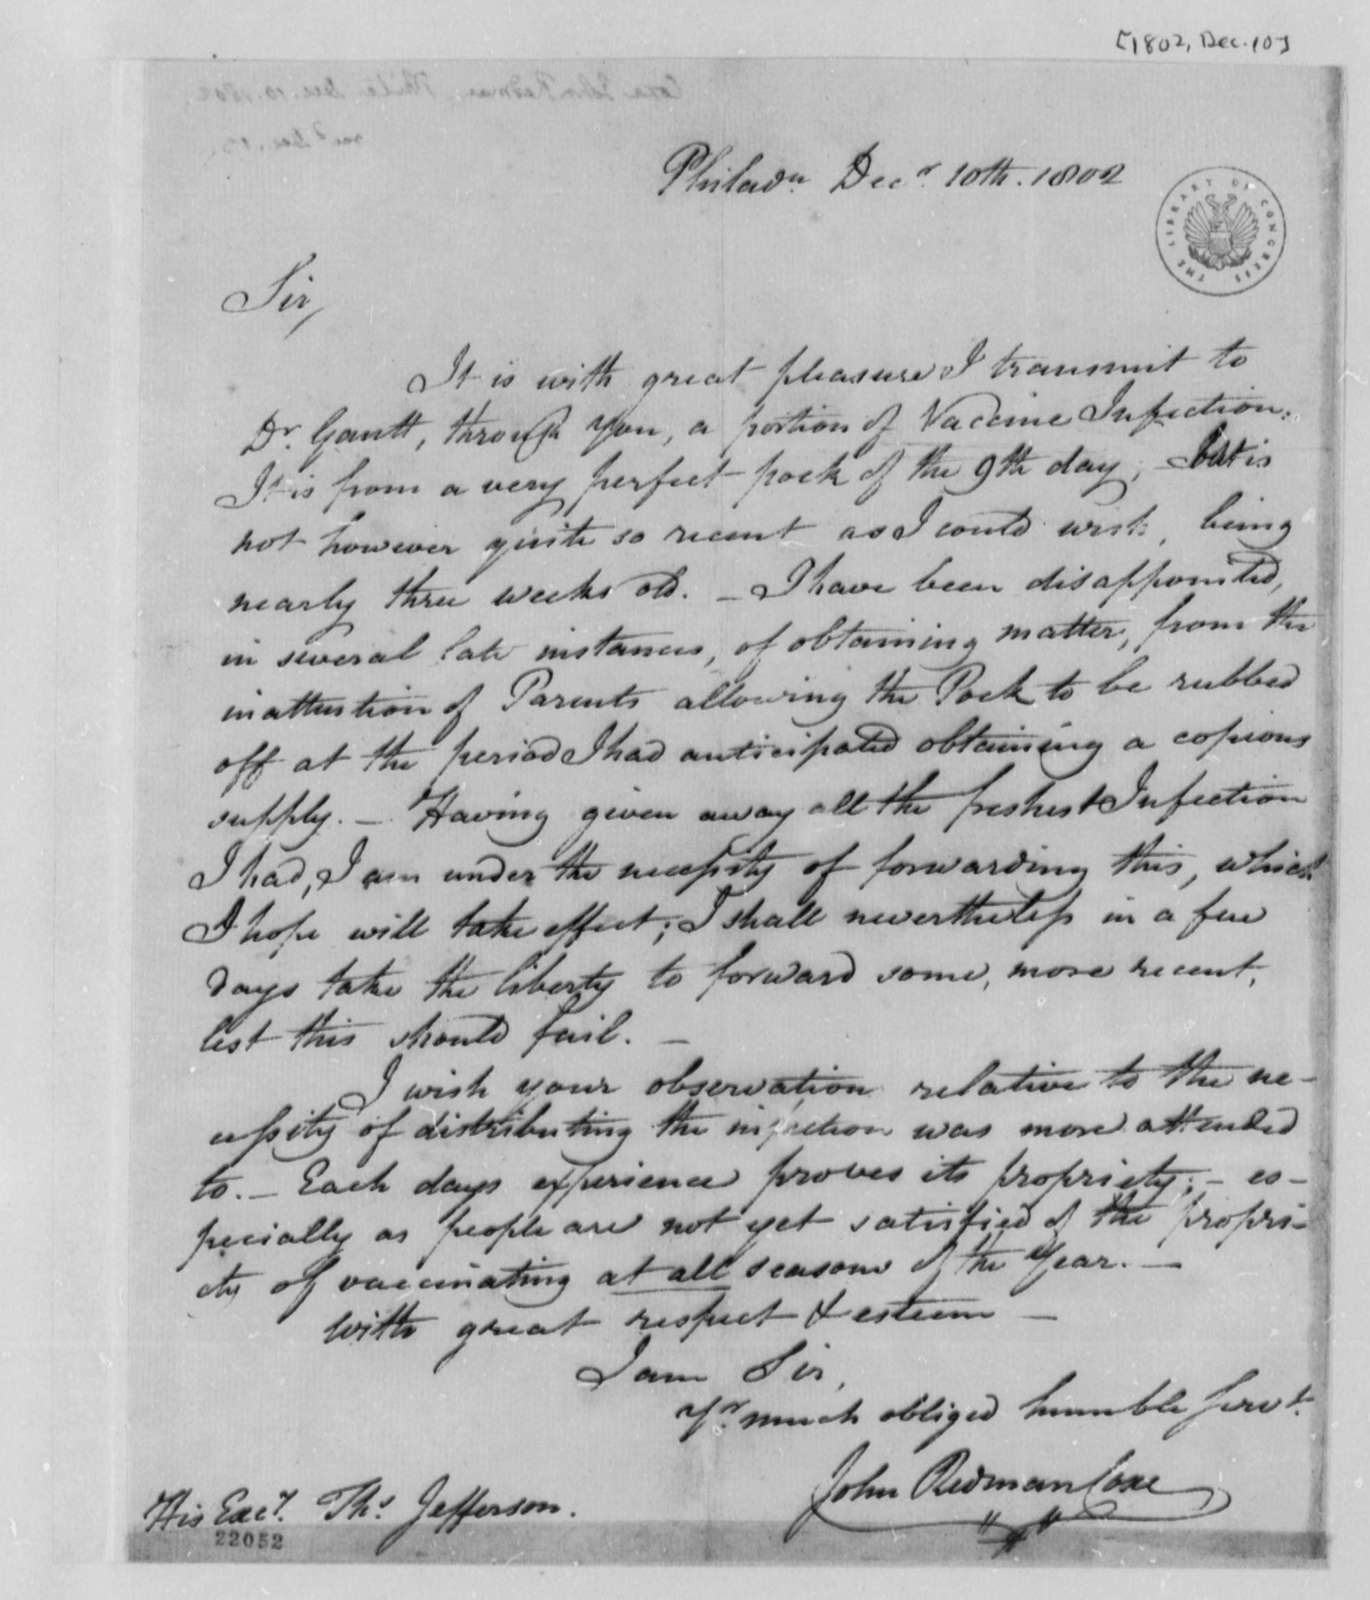 John Redman Coxe to Thomas Jefferson, December 10, 1802